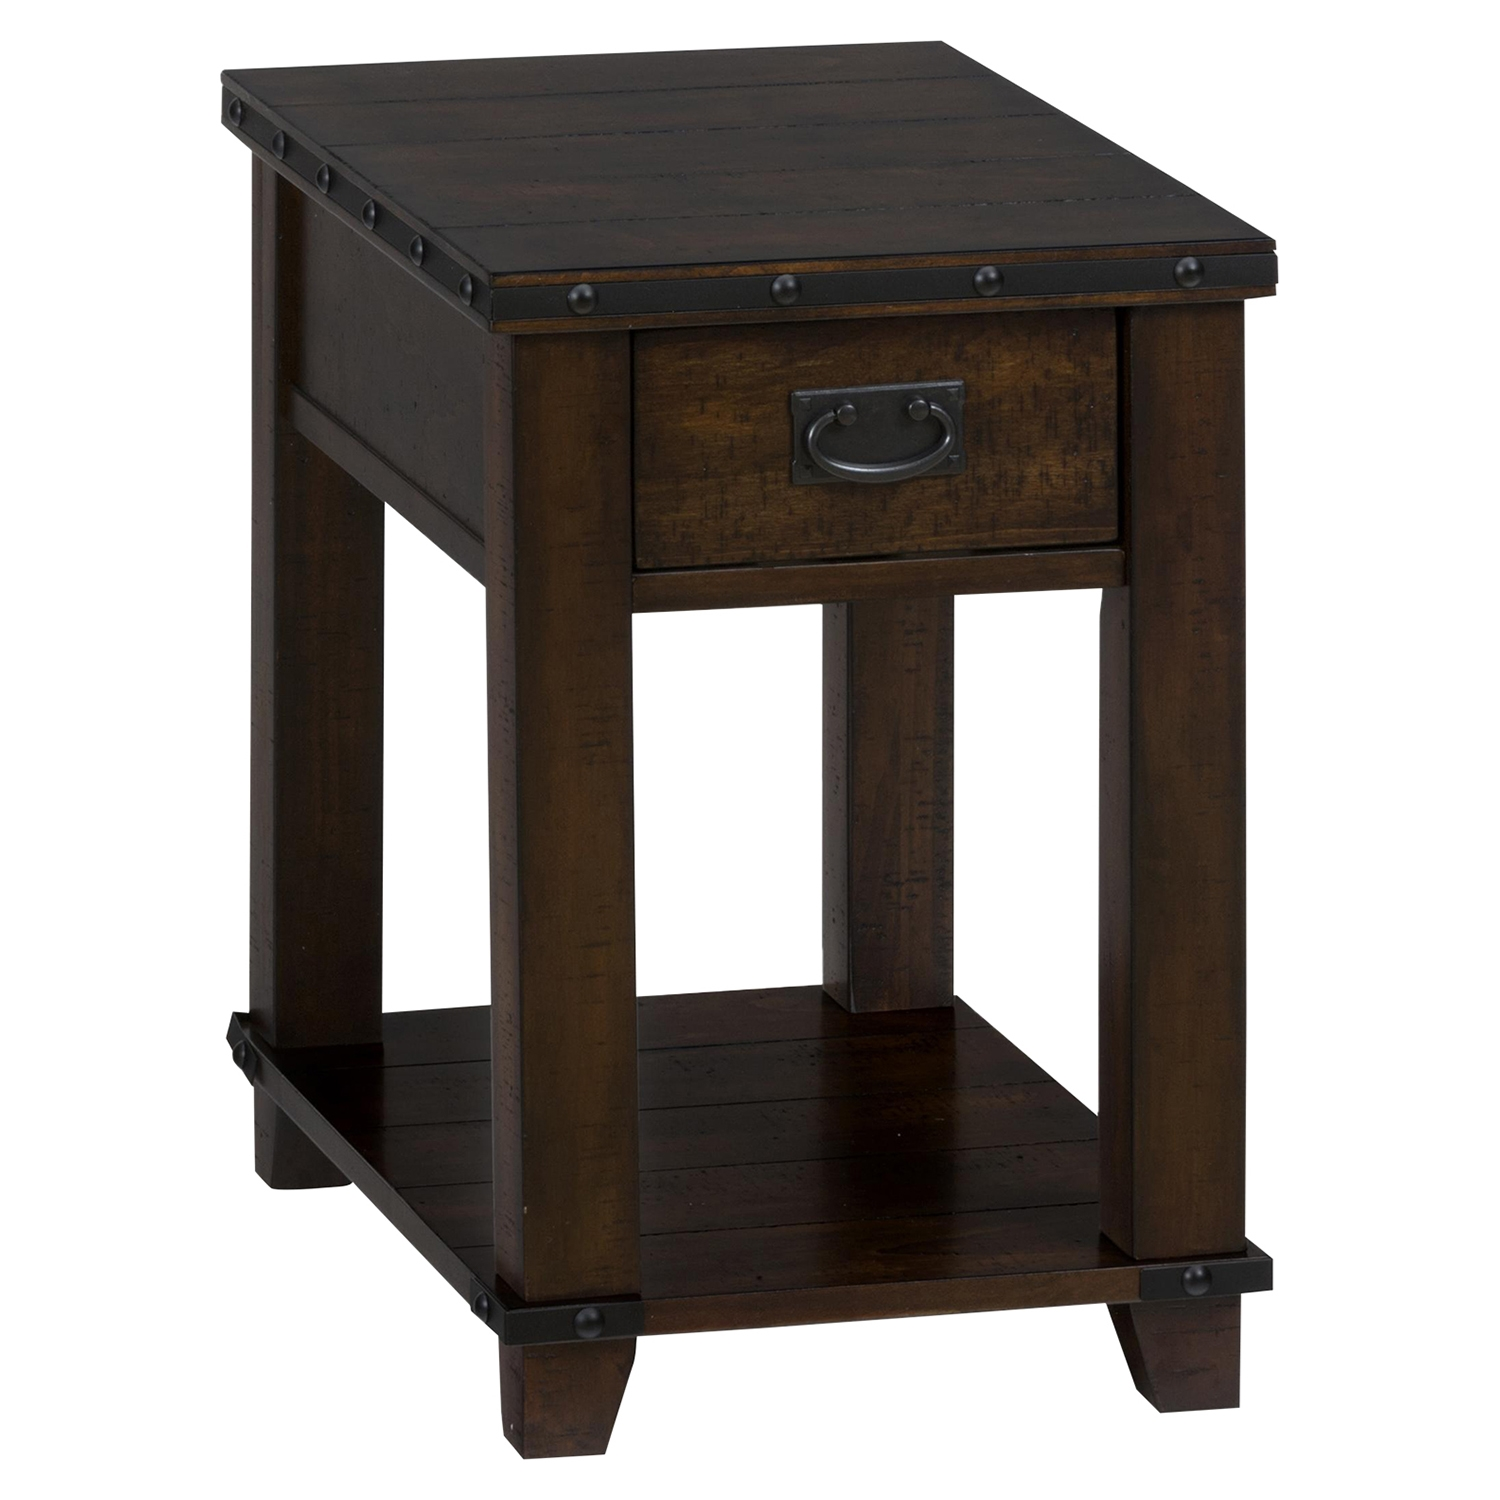 Cassidy Chairside Table - Plank Top, Dark Brown - JOFR-561-7